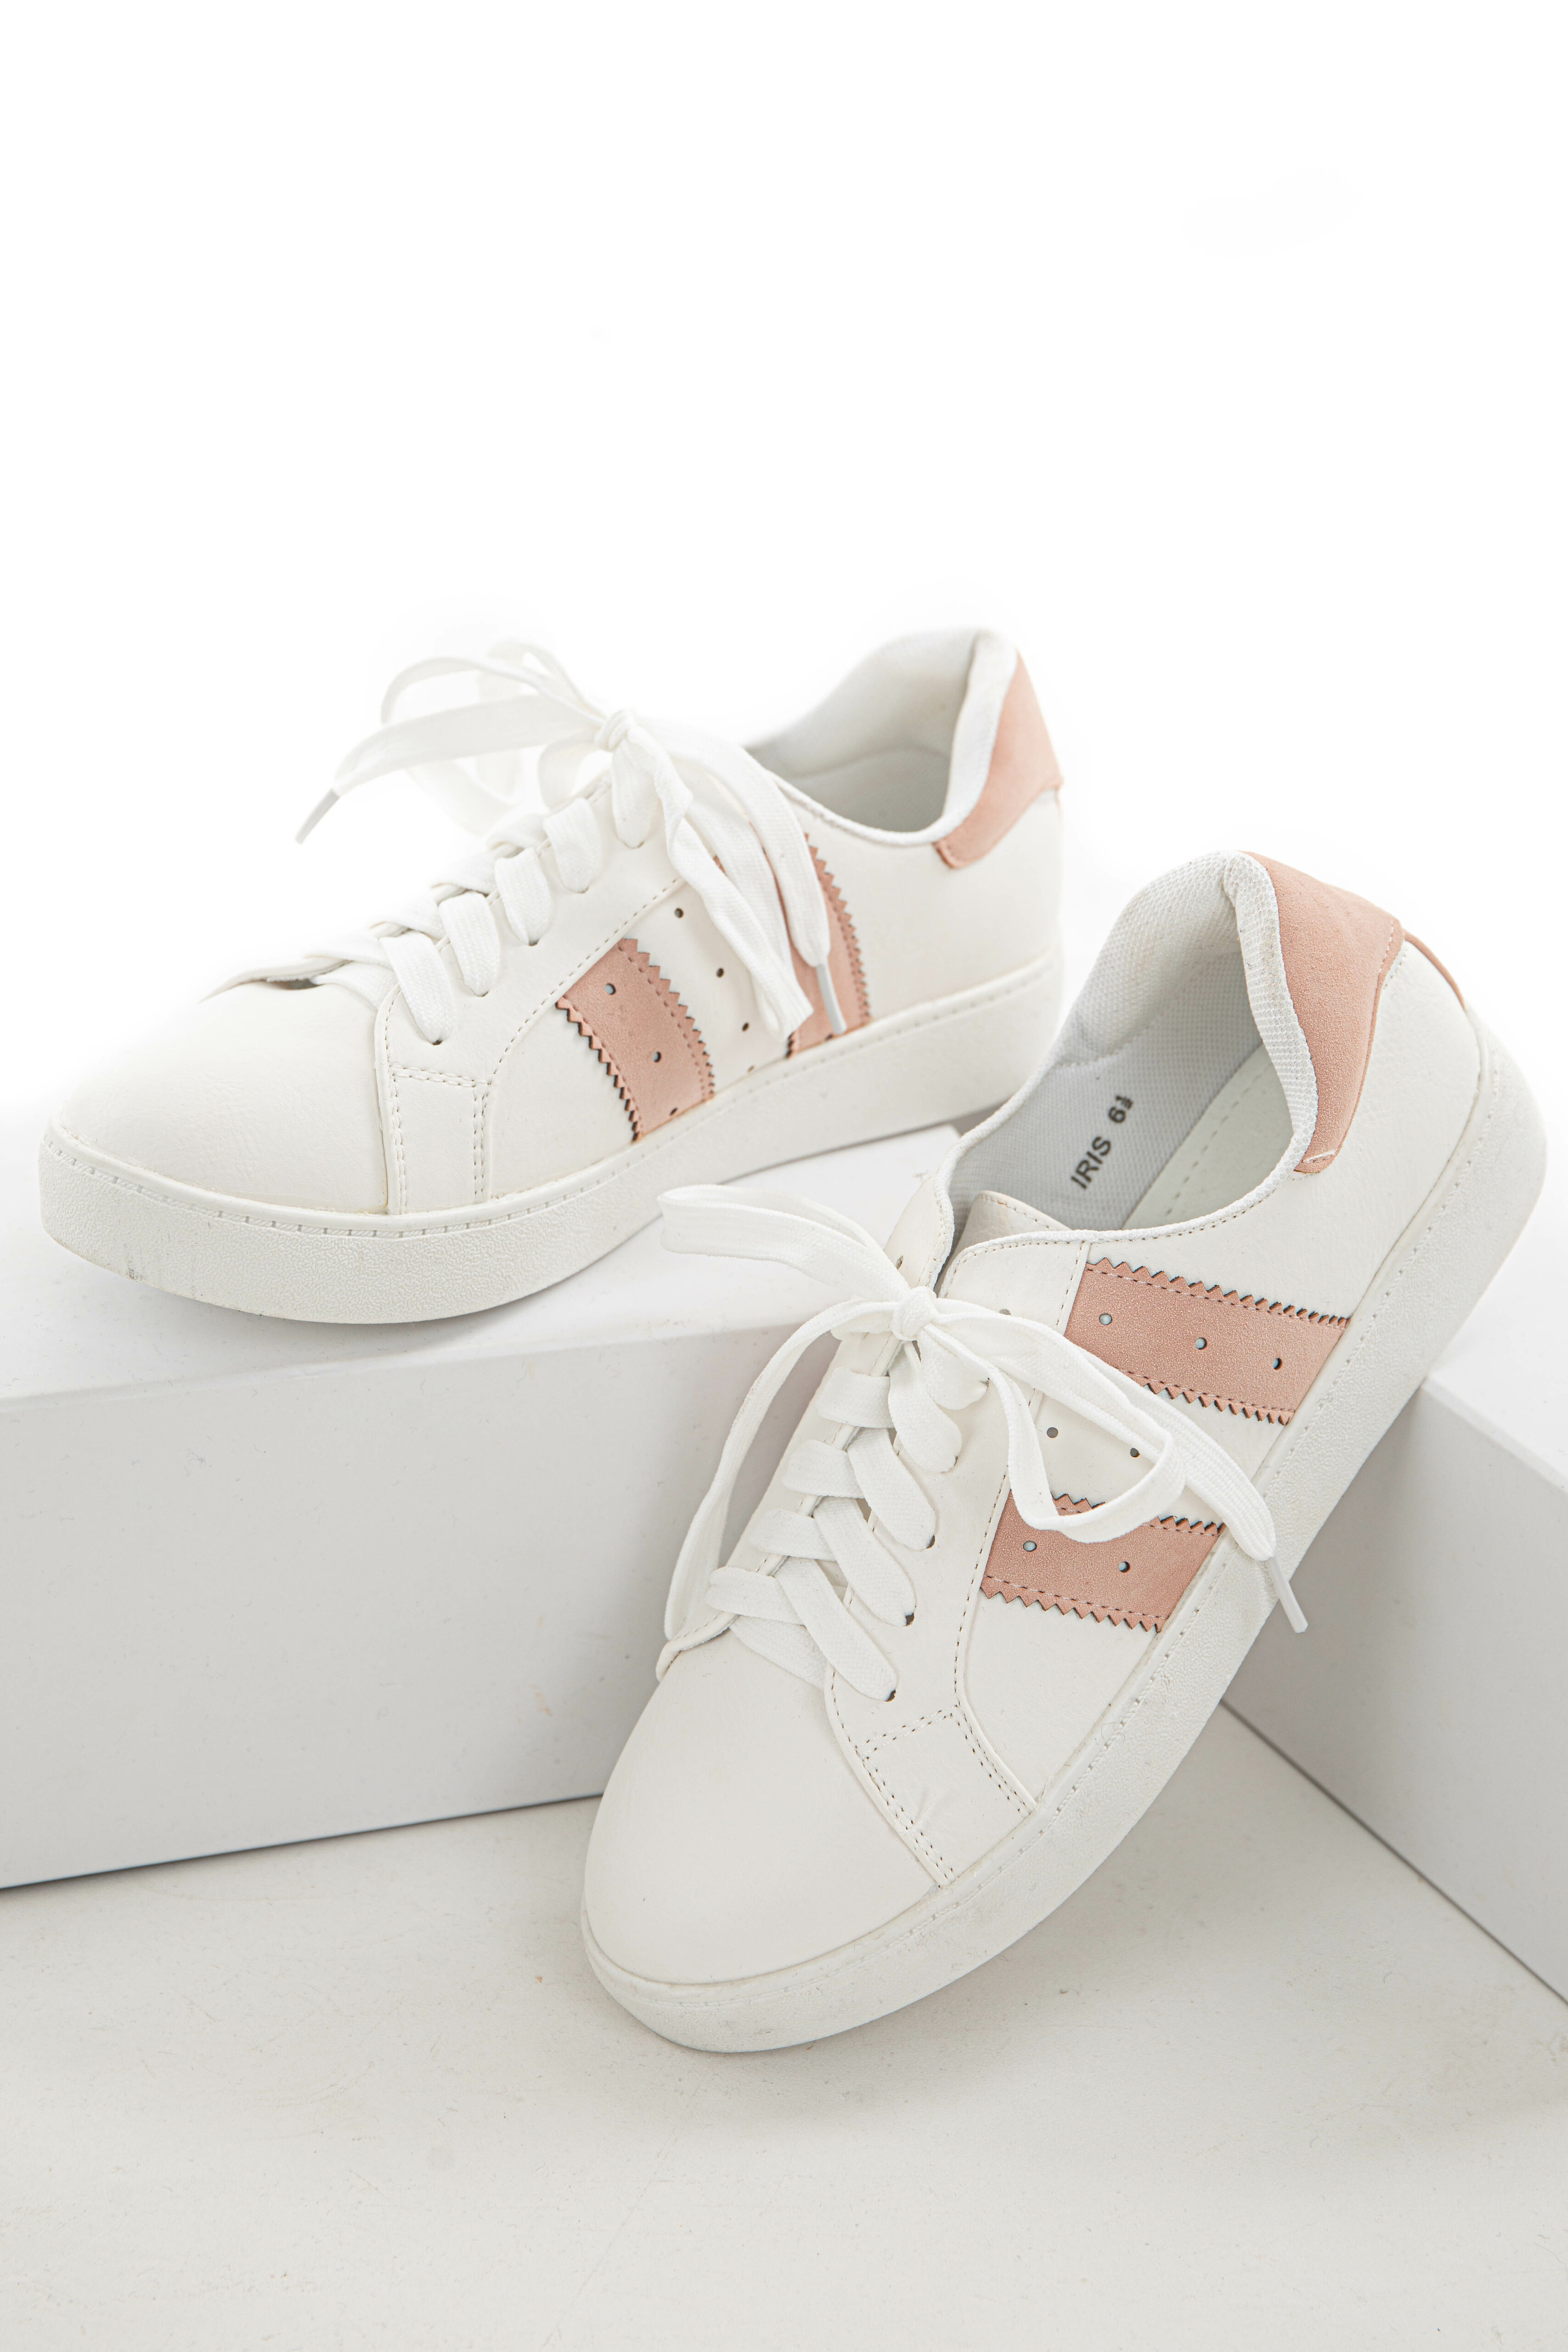 Dusty Blush and White Colorblock Sneakers